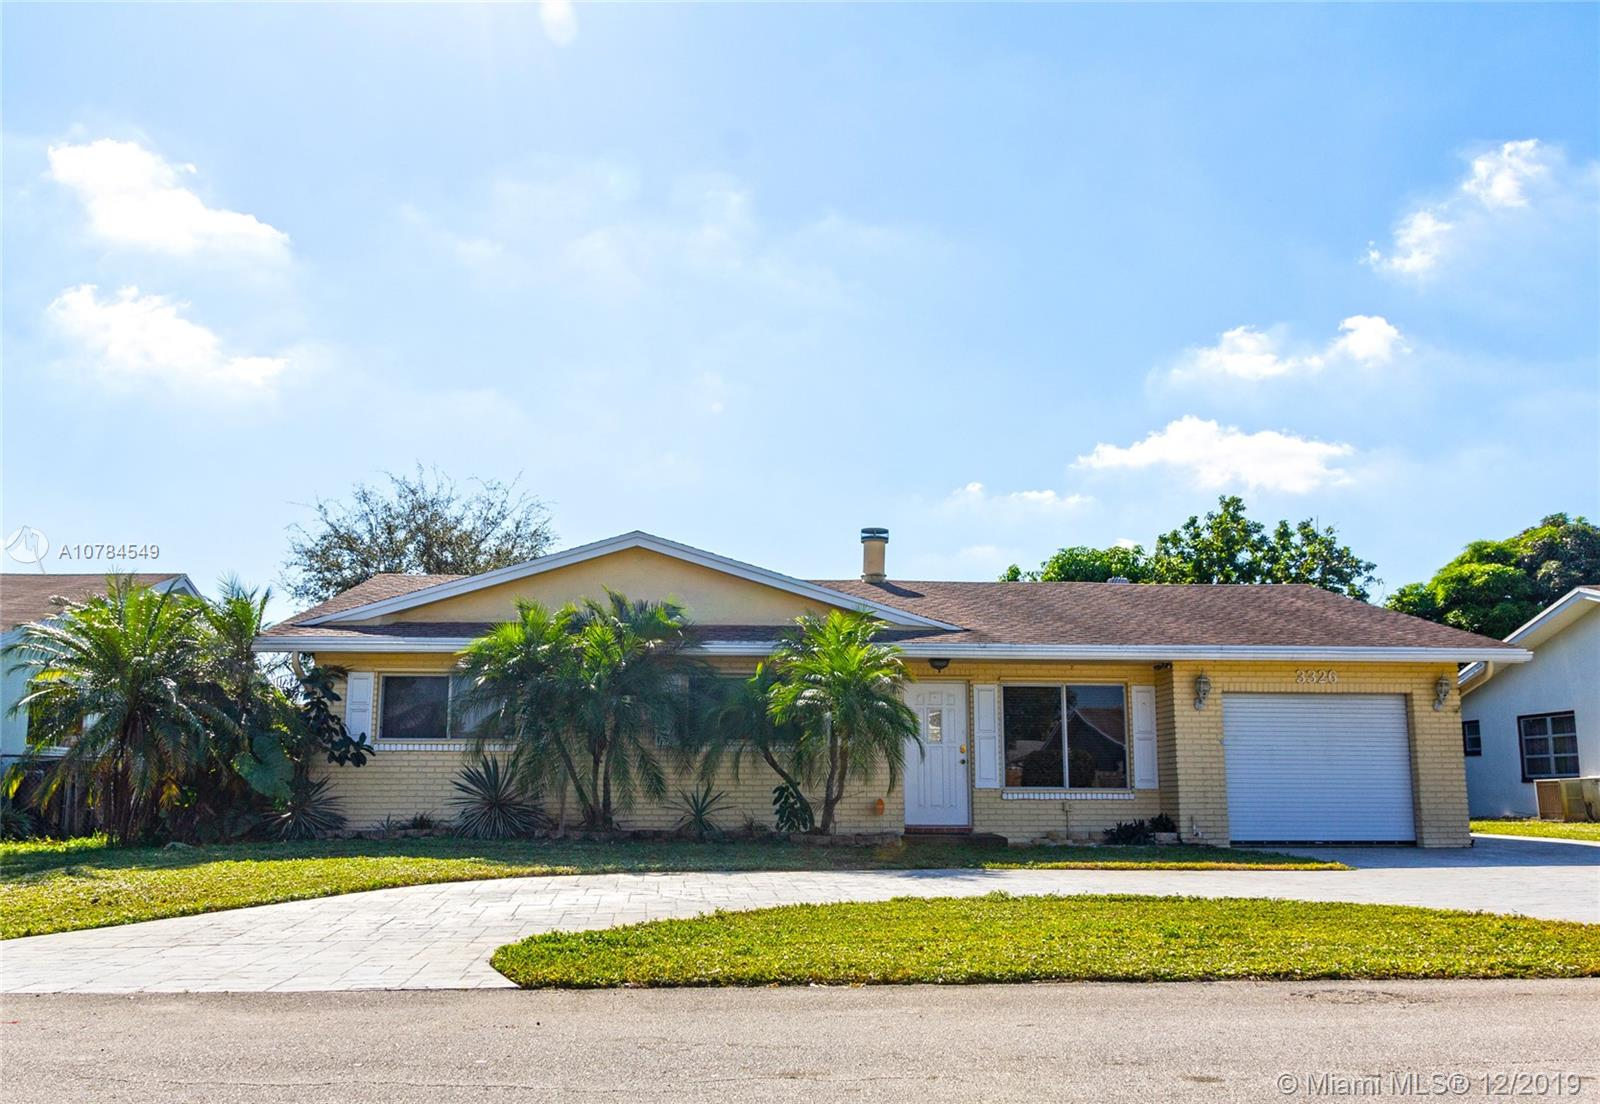 3326 NW 69th St, Fort Lauderdale, FL 33309